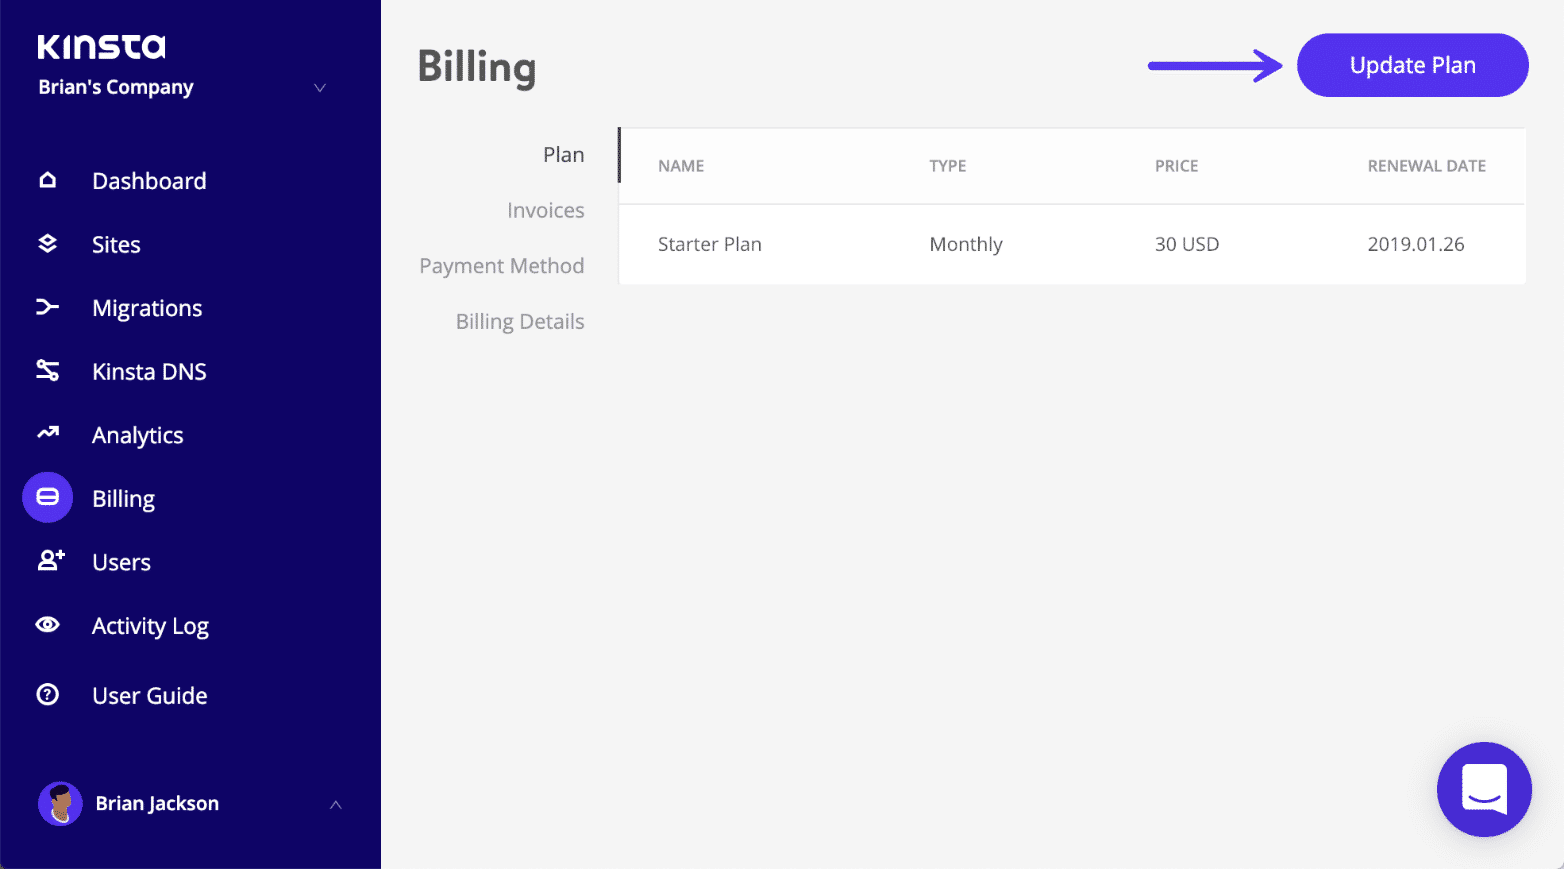 Kinsta billing - update plan